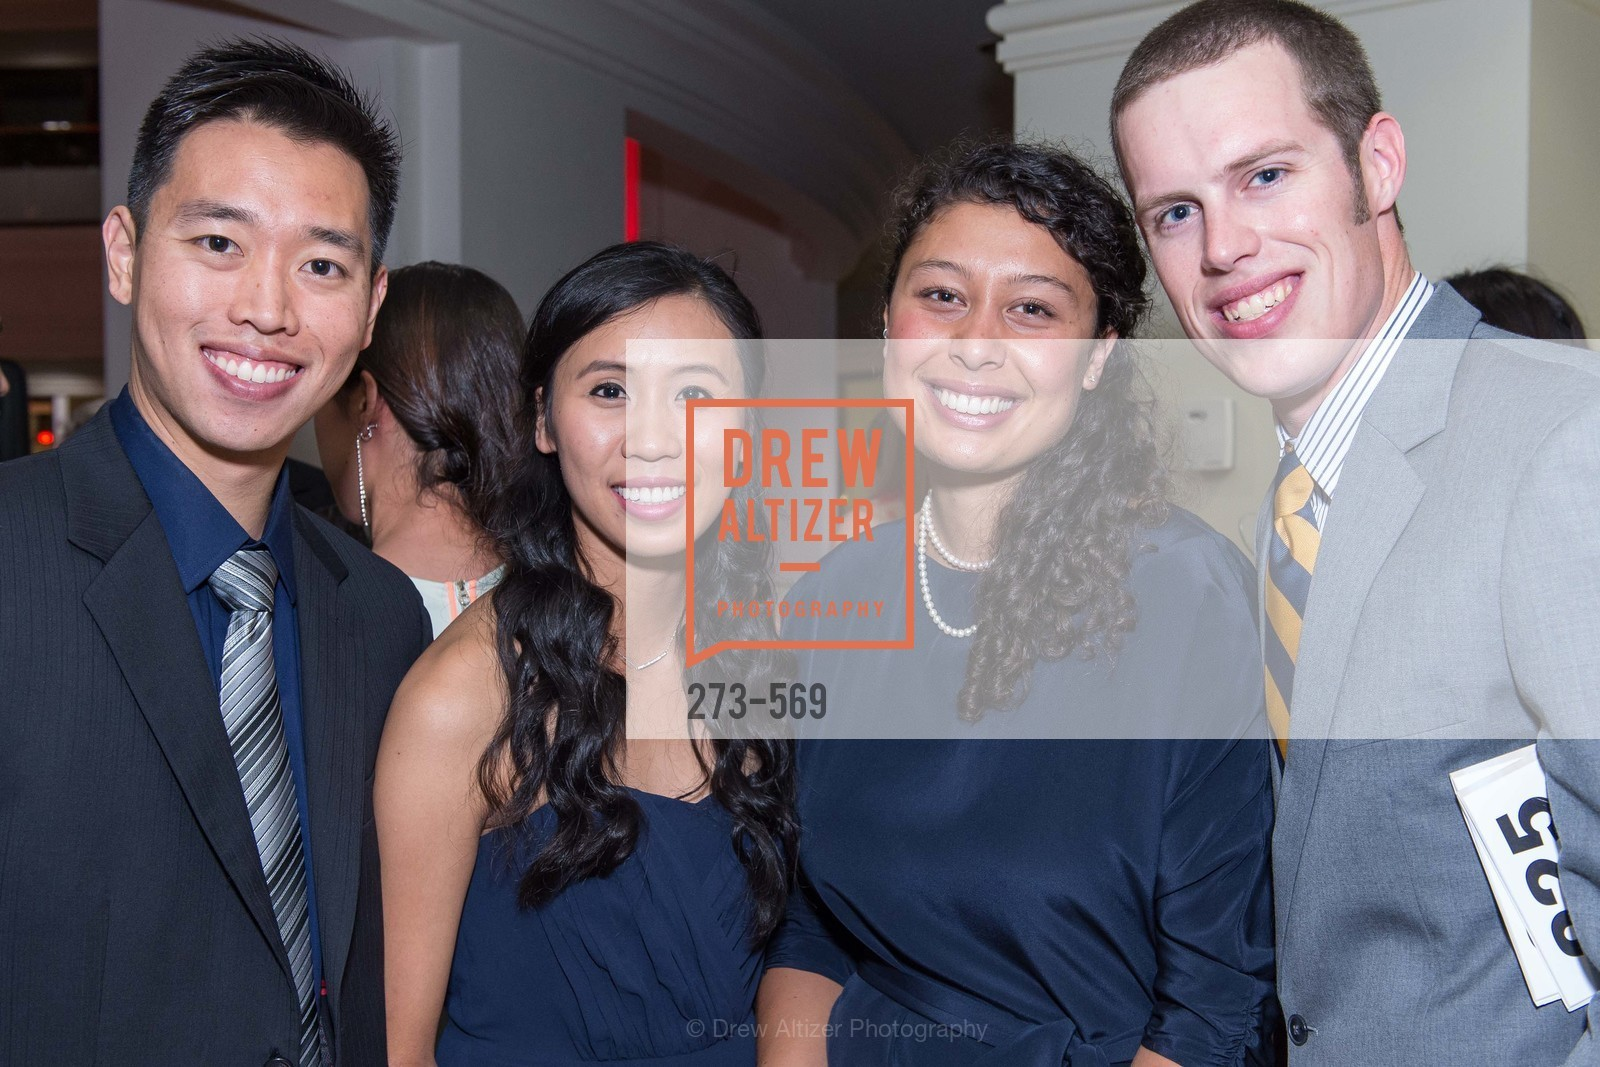 James Lee, Mandy Jin, Jas Ludlow, Jorel Allegro, CHABOT Science Center STARLIGHT GALA, US, September 20th, 2014,Drew Altizer, Drew Altizer Photography, full-service event agency, private events, San Francisco photographer, photographer California